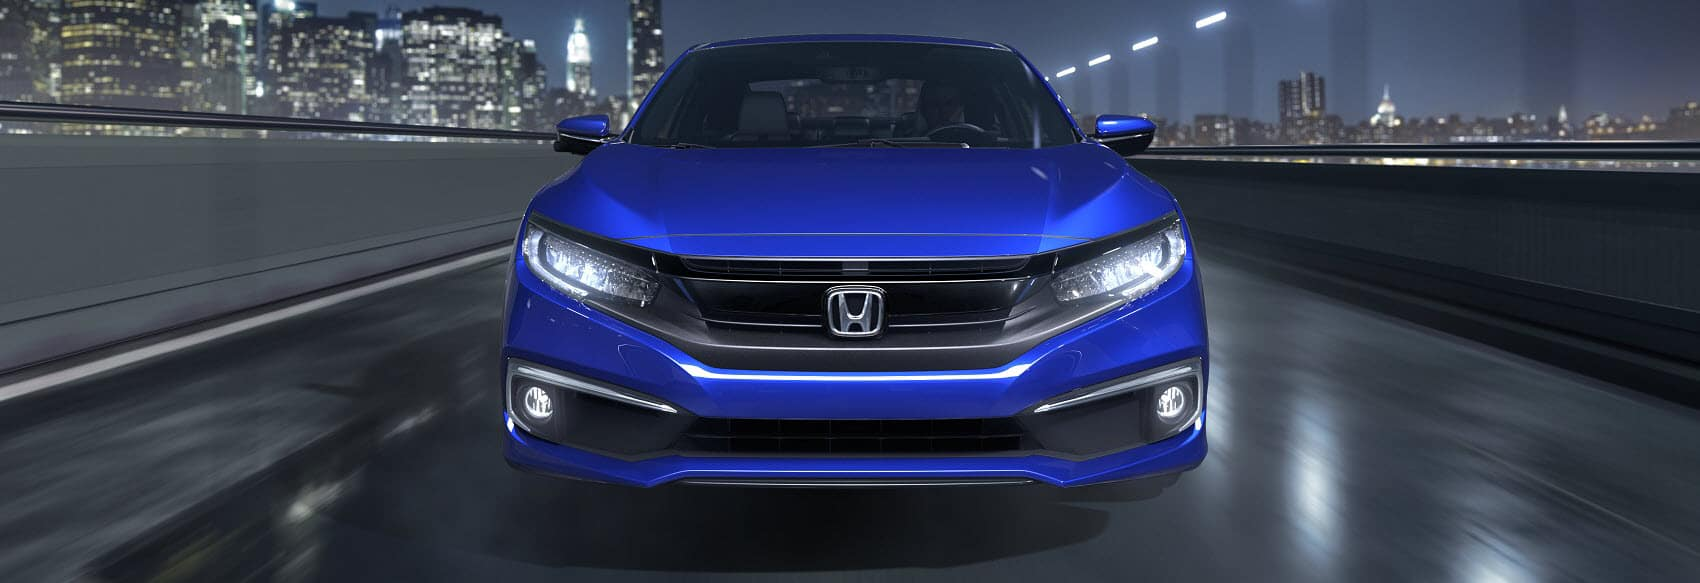 Honda Civic Lease Near El Monte Ca Norm Reeves Honda West Covina